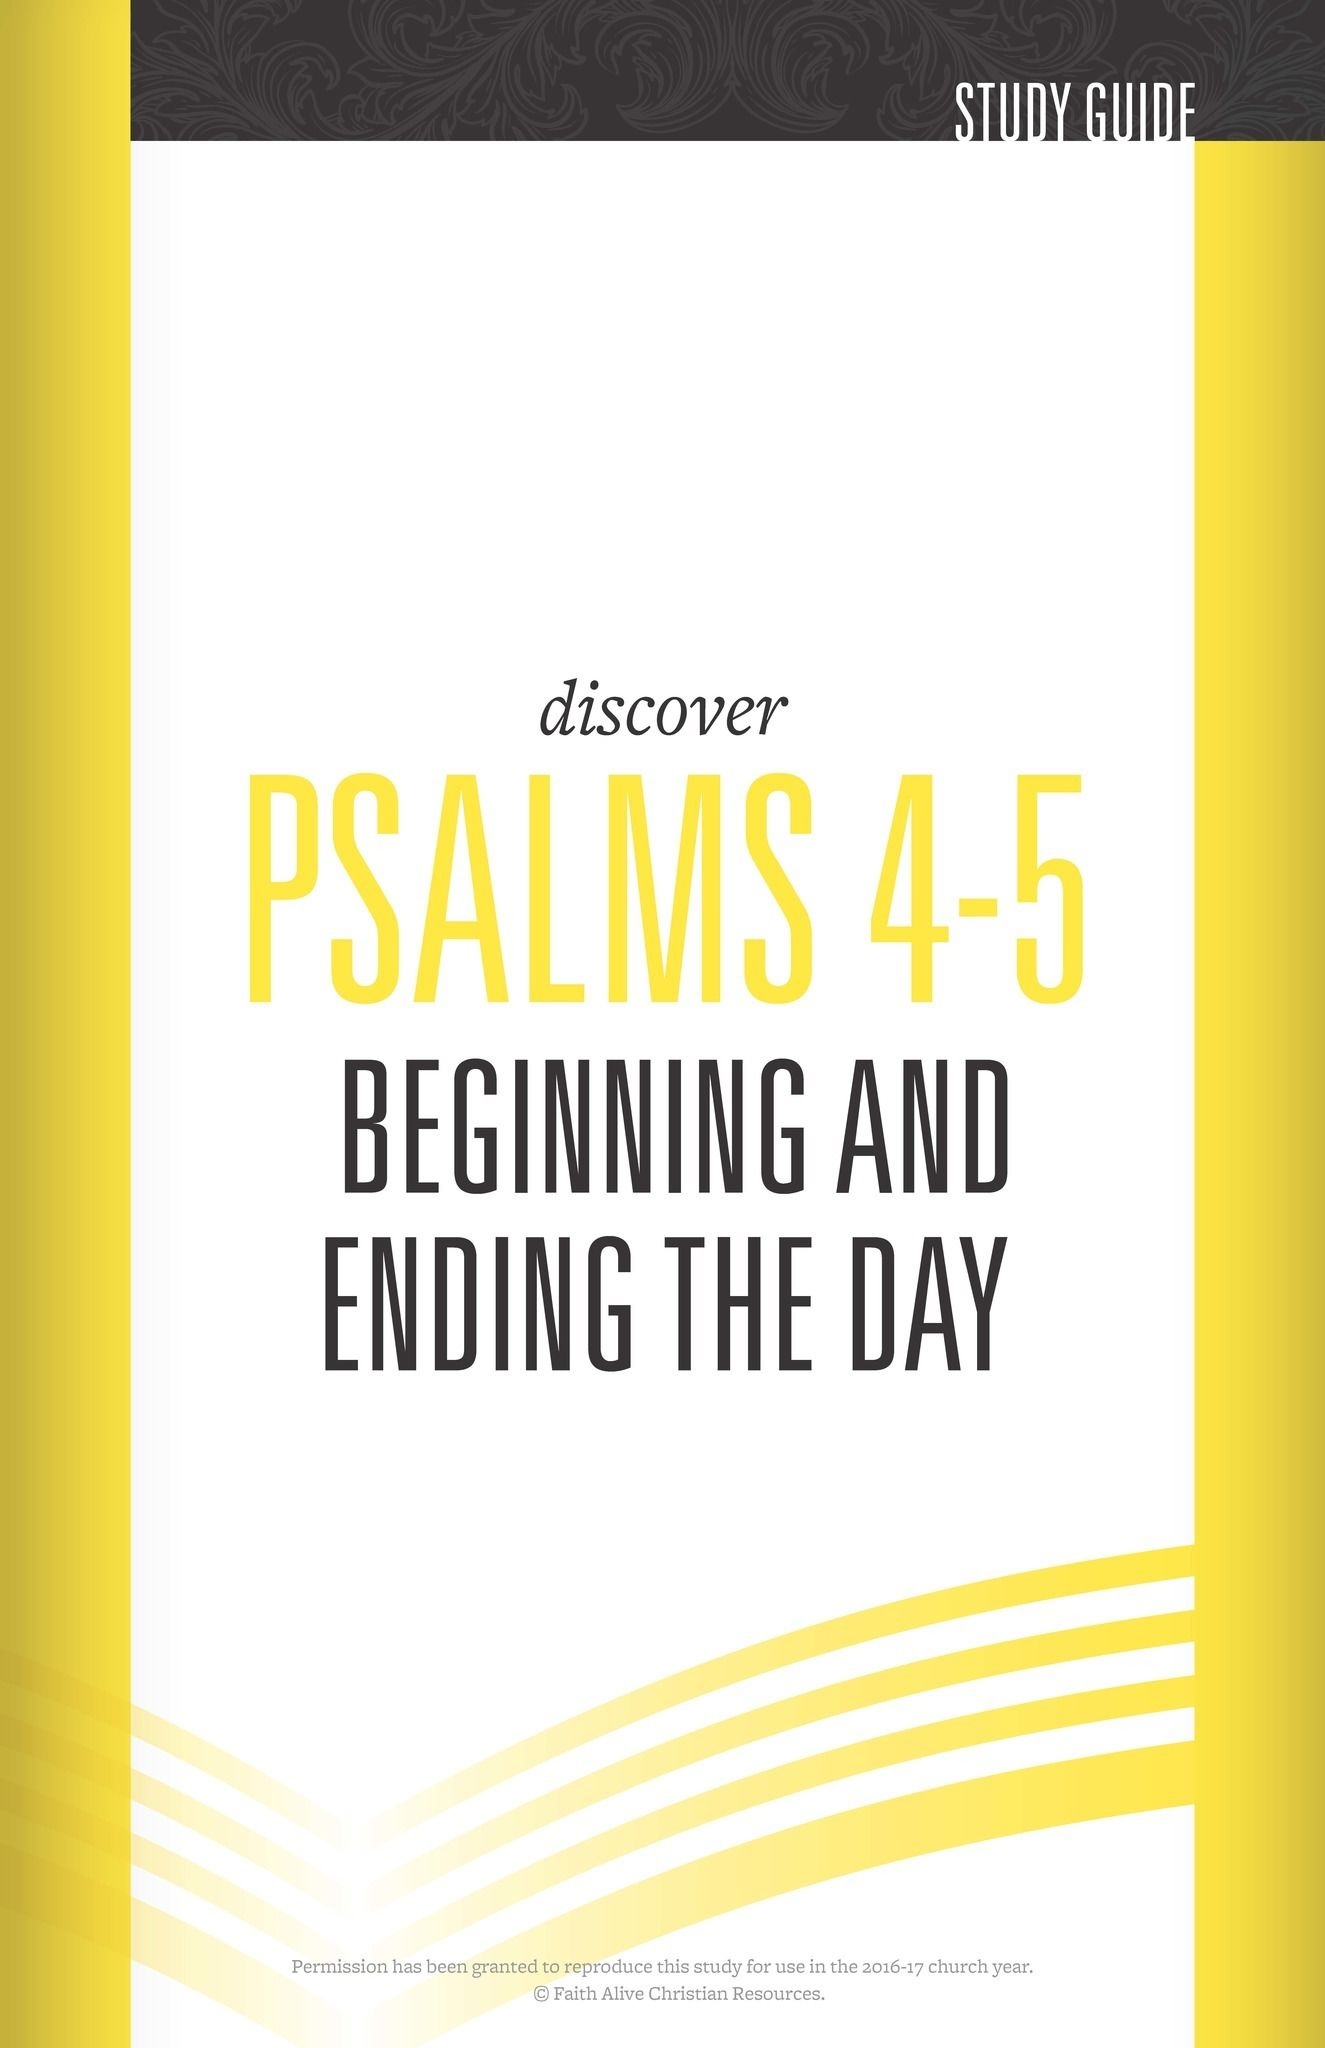 Psalms 4 & 5 Cover Image